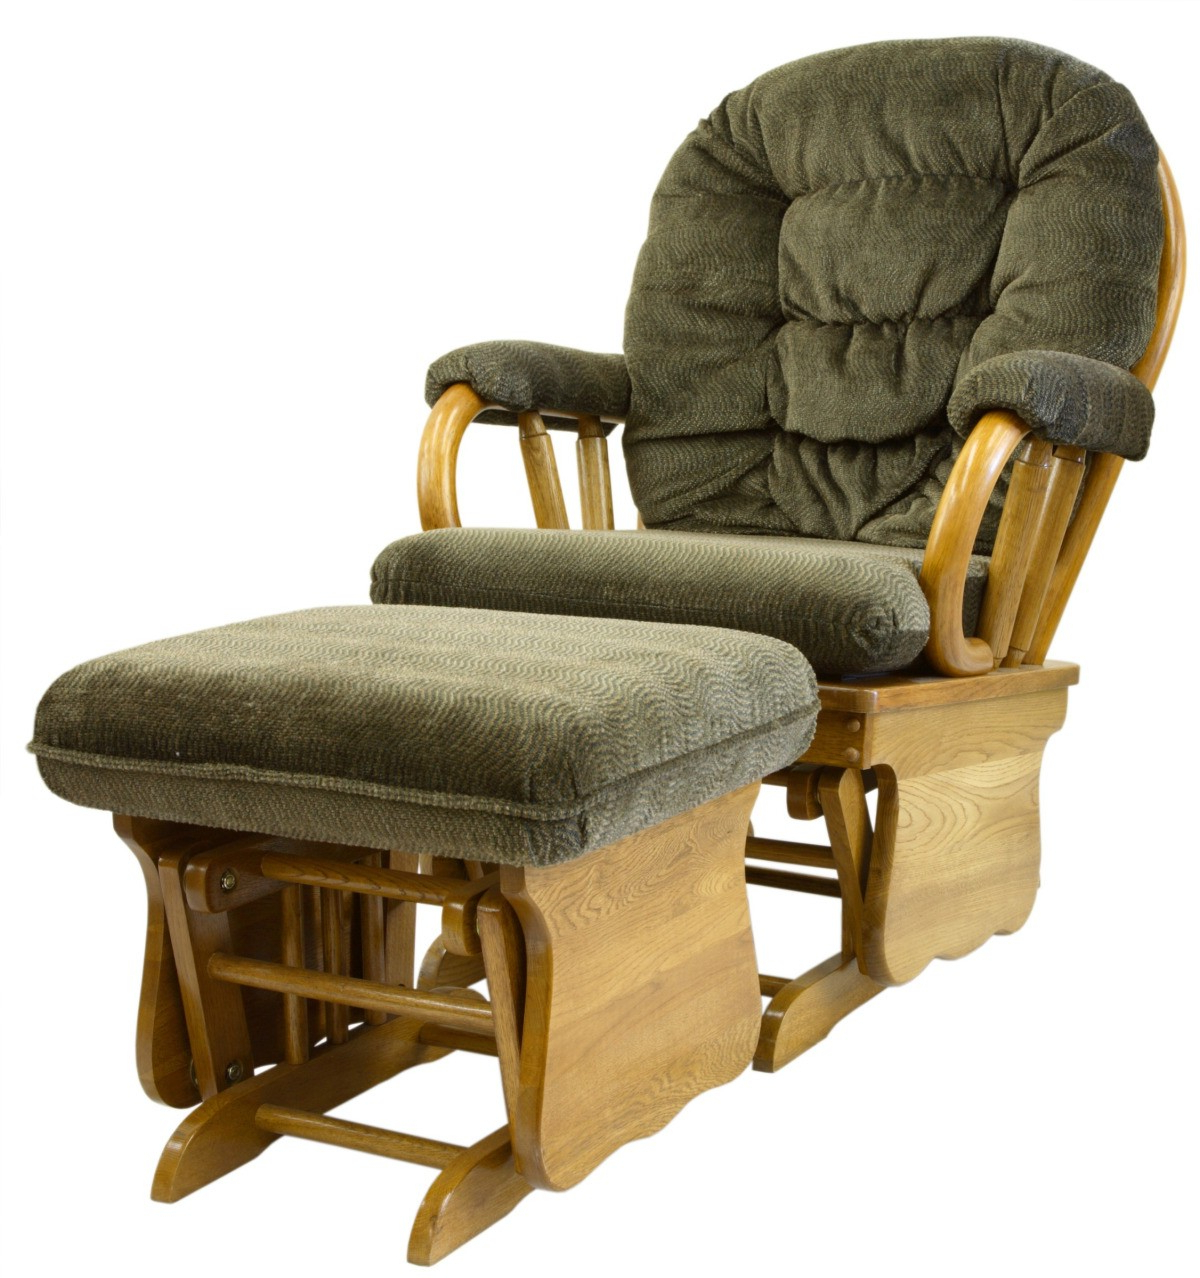 Rocking Glider Benches With Cushions For Well Liked Finding Glider Chair Replacement Cushions (View 20 of 30)